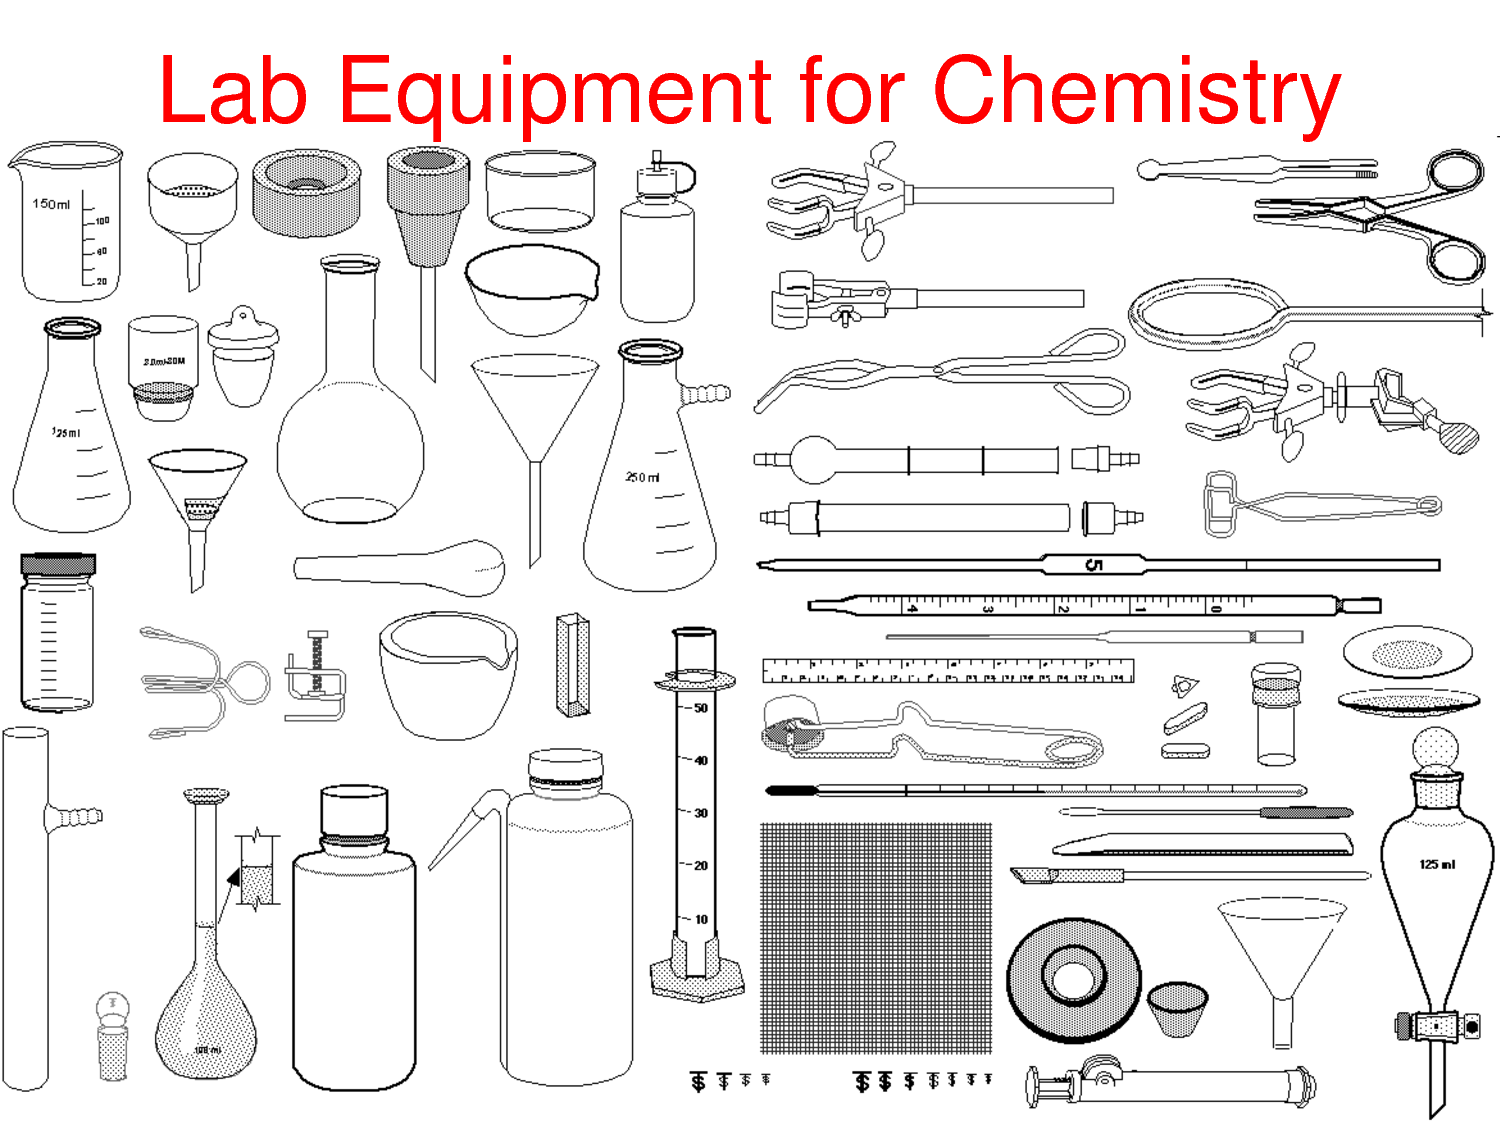 Worksheets Science Lab Equipment Worksheet uncategorized chemistry lab equipment worksheet klimttreeoflife dimensions published in common laboratory worksheets